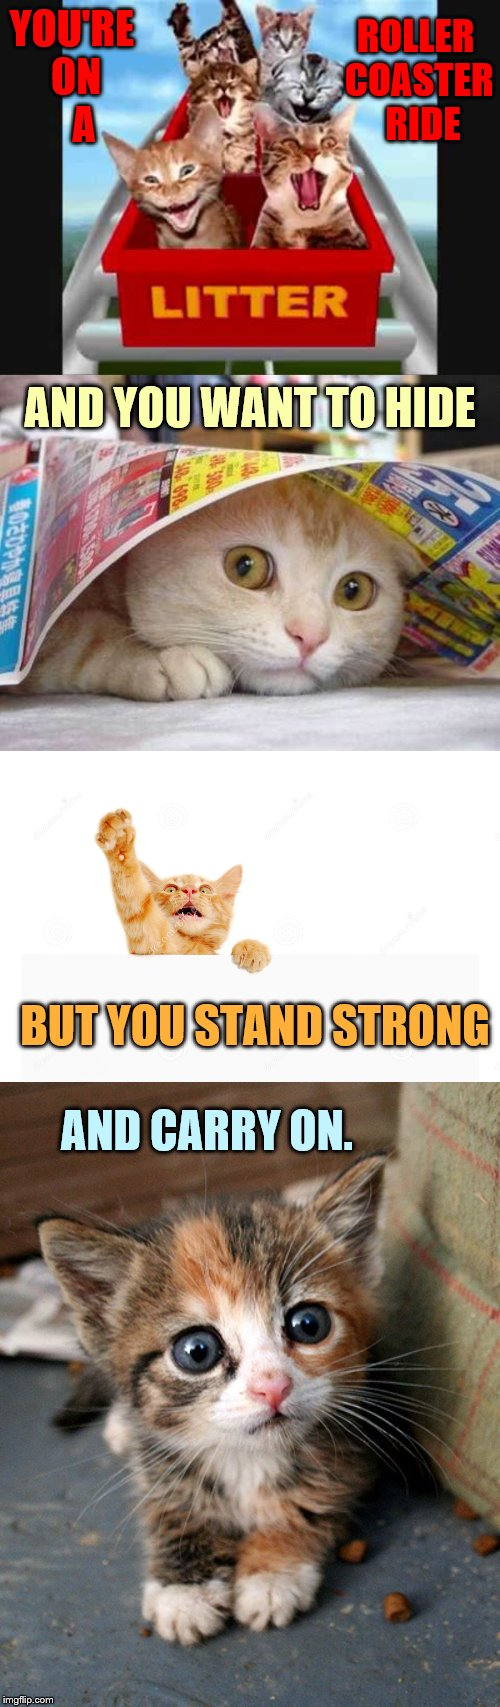 Some Times You Feel Like | YOU'RE ON    A AND CARRY ON. ROLLER COASTER  RIDE AND YOU WANT TO HIDE BUT YOU STAND STRONG | image tagged in memes,kitten,roller coaster,hide,stand,carry on | made w/ Imgflip meme maker